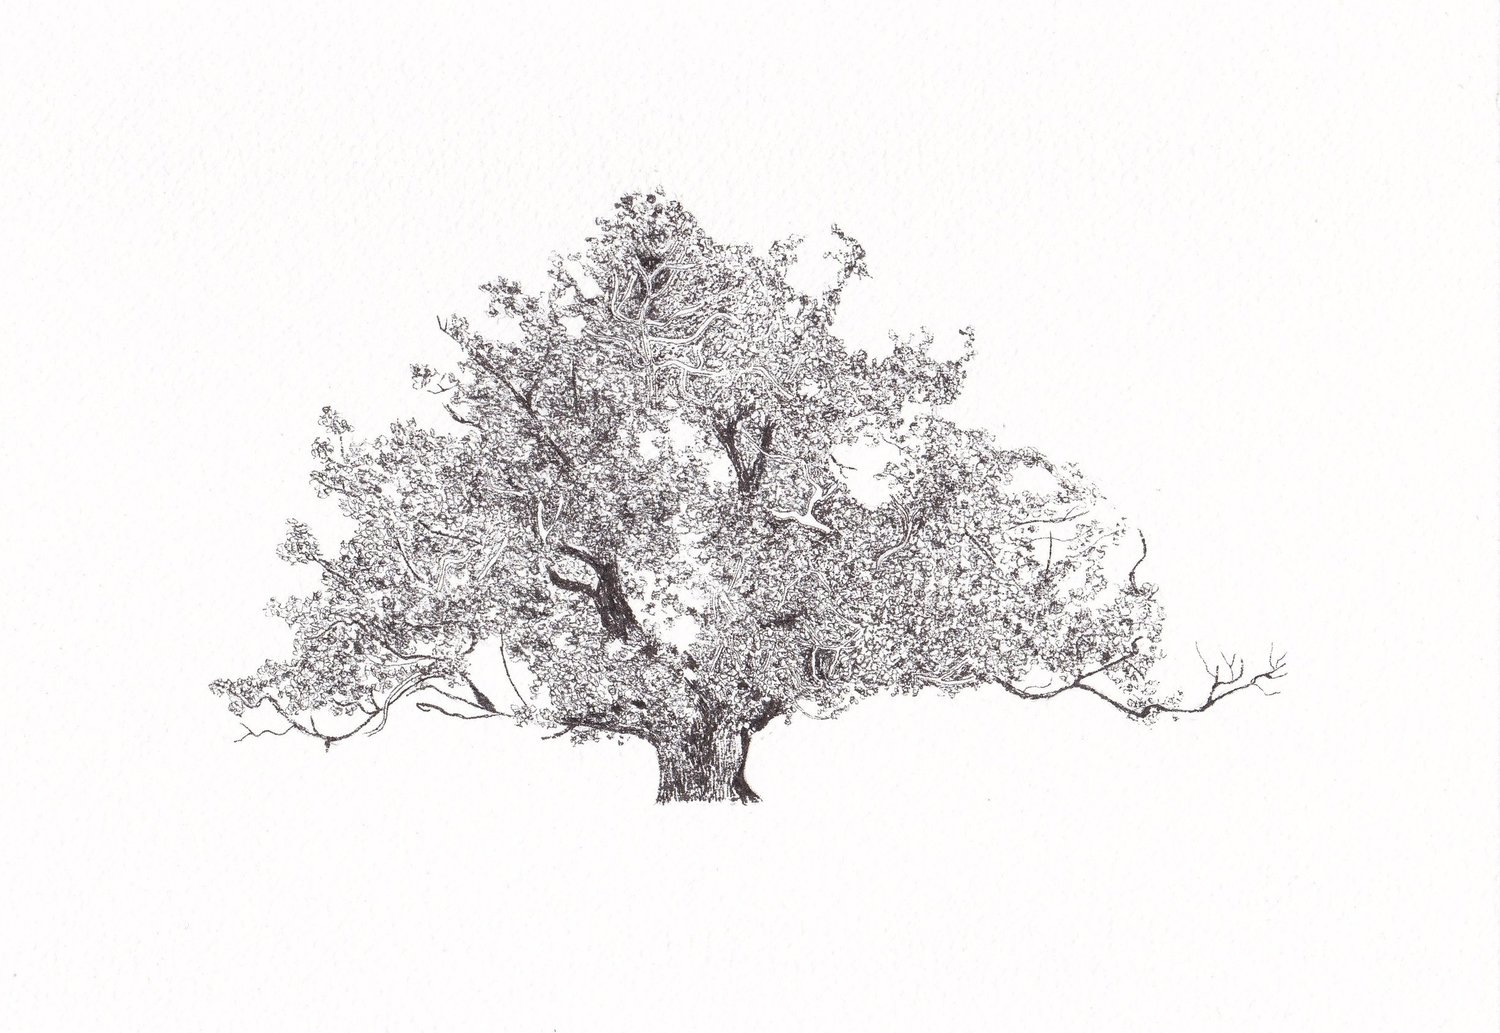 Oak ,  25.4cm x 17.8cm, pen on paper